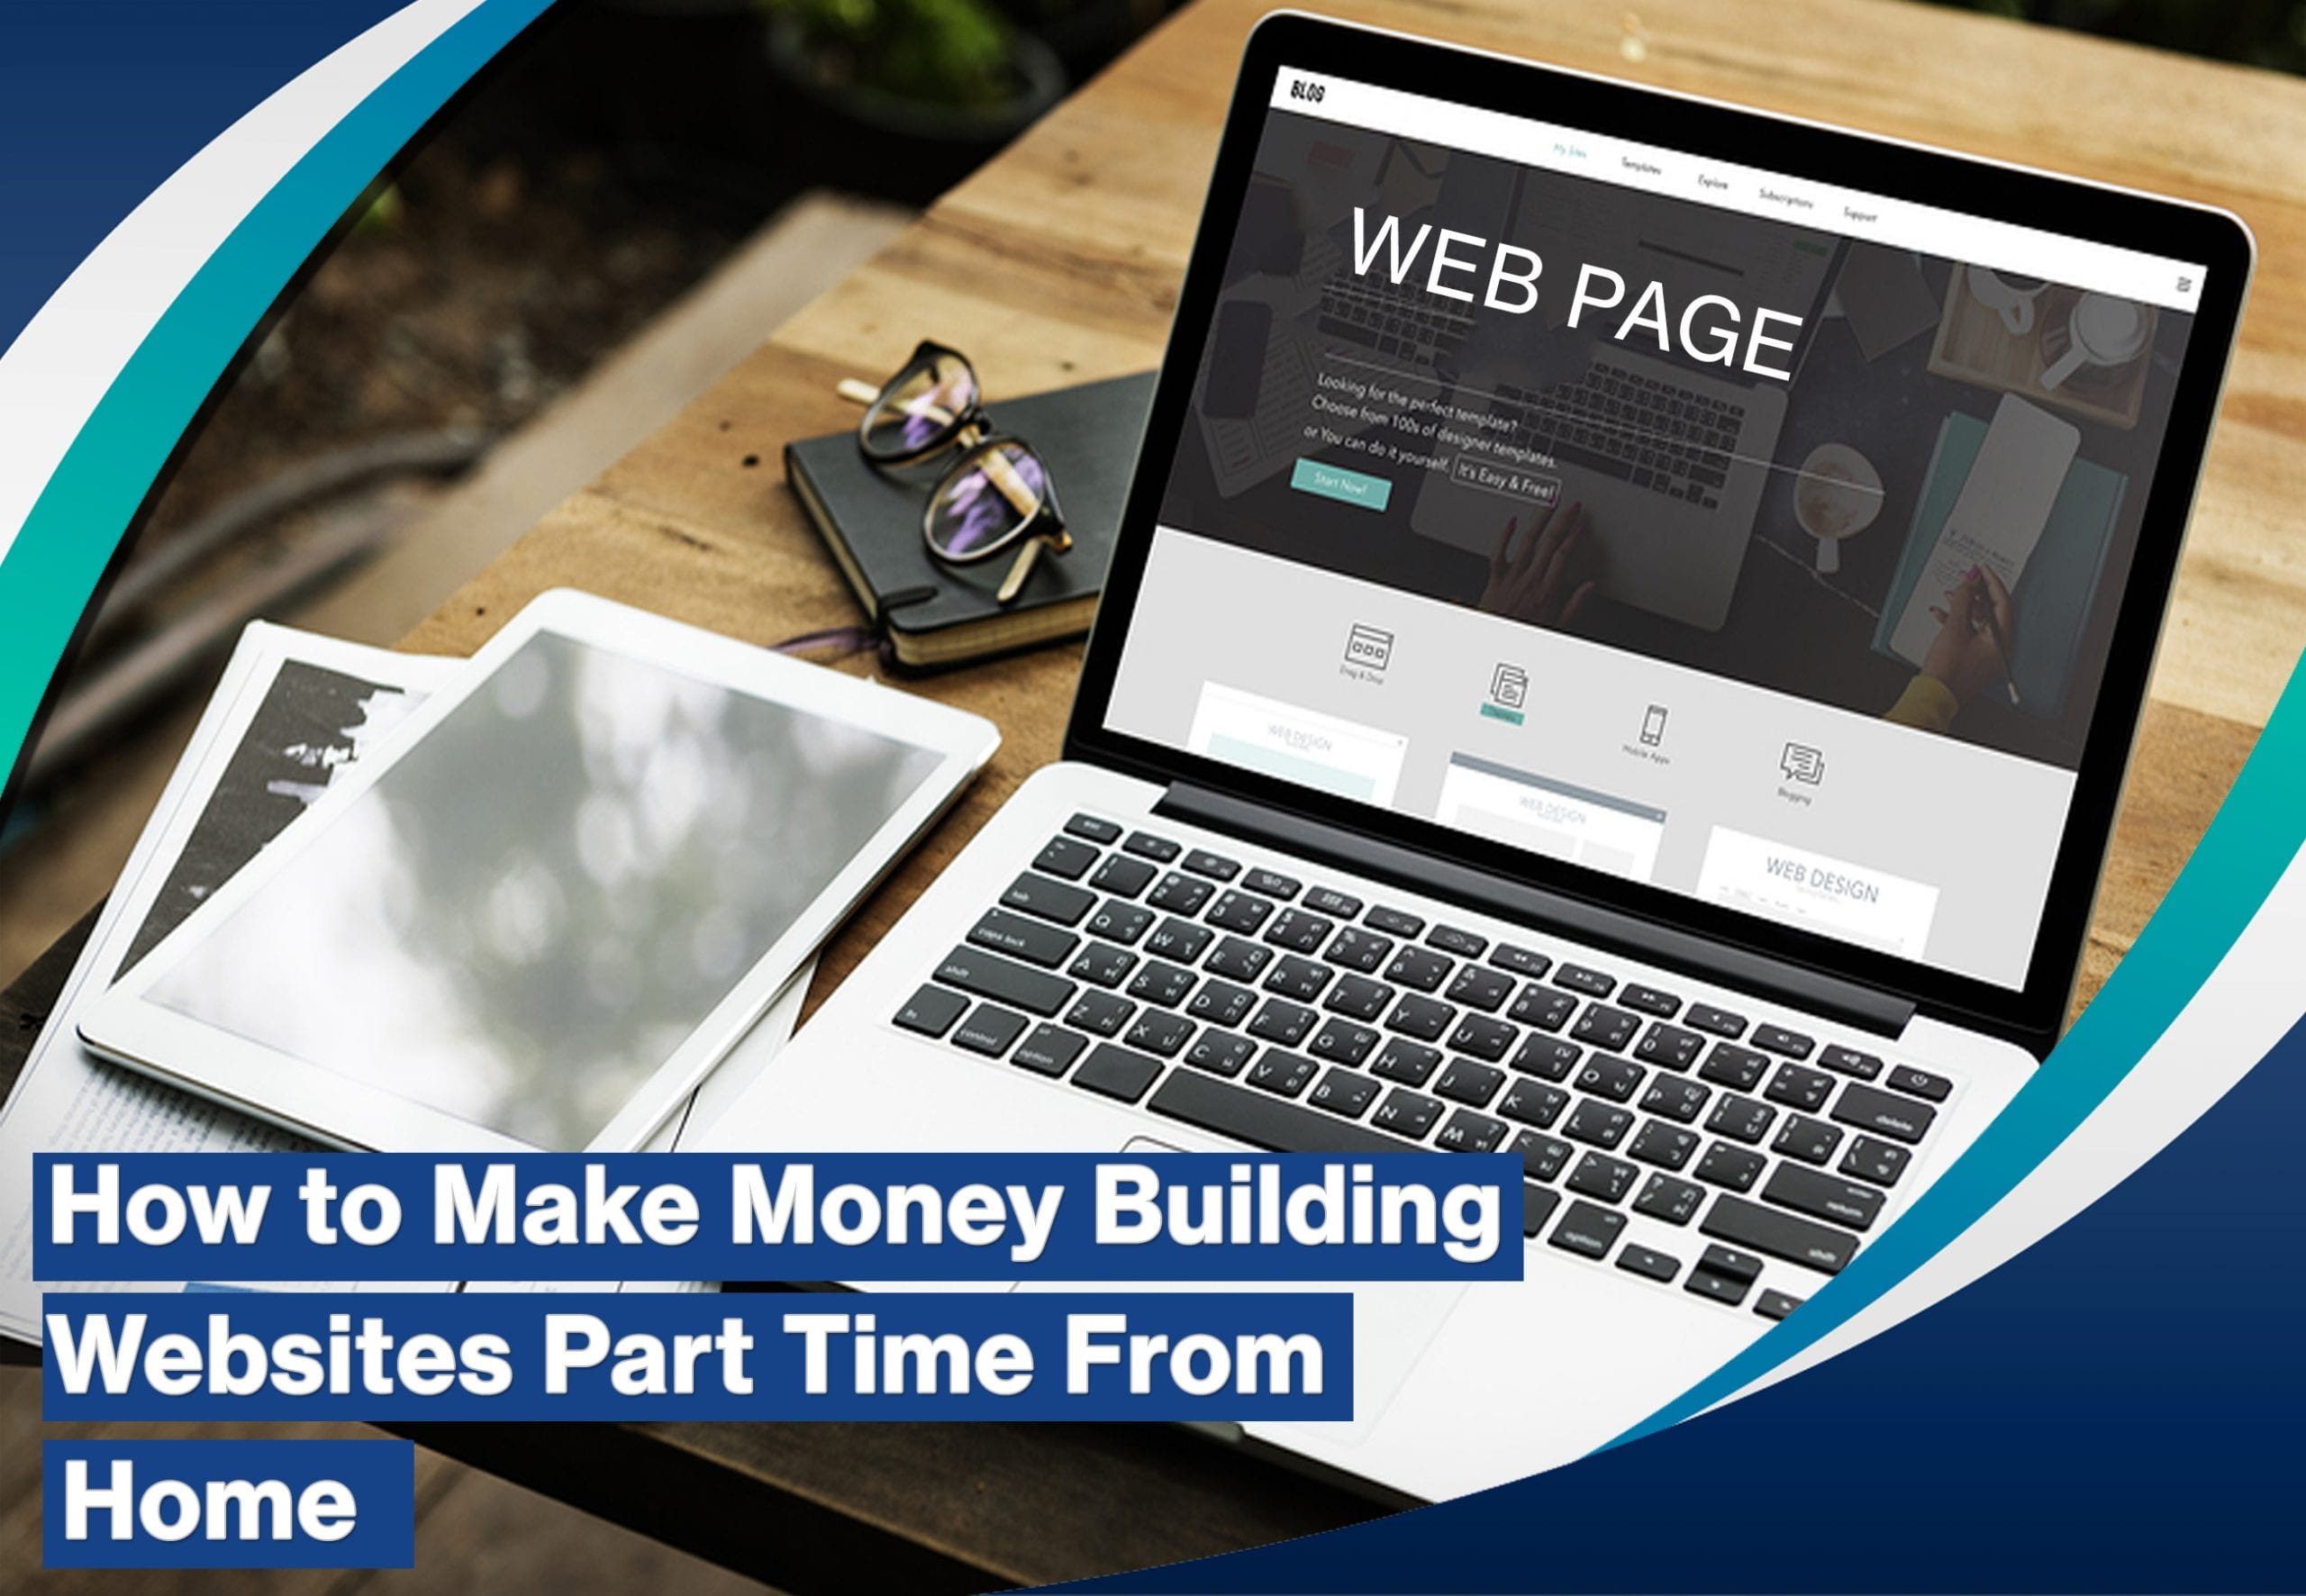 How to Make Money Building Websites Part Time From Home